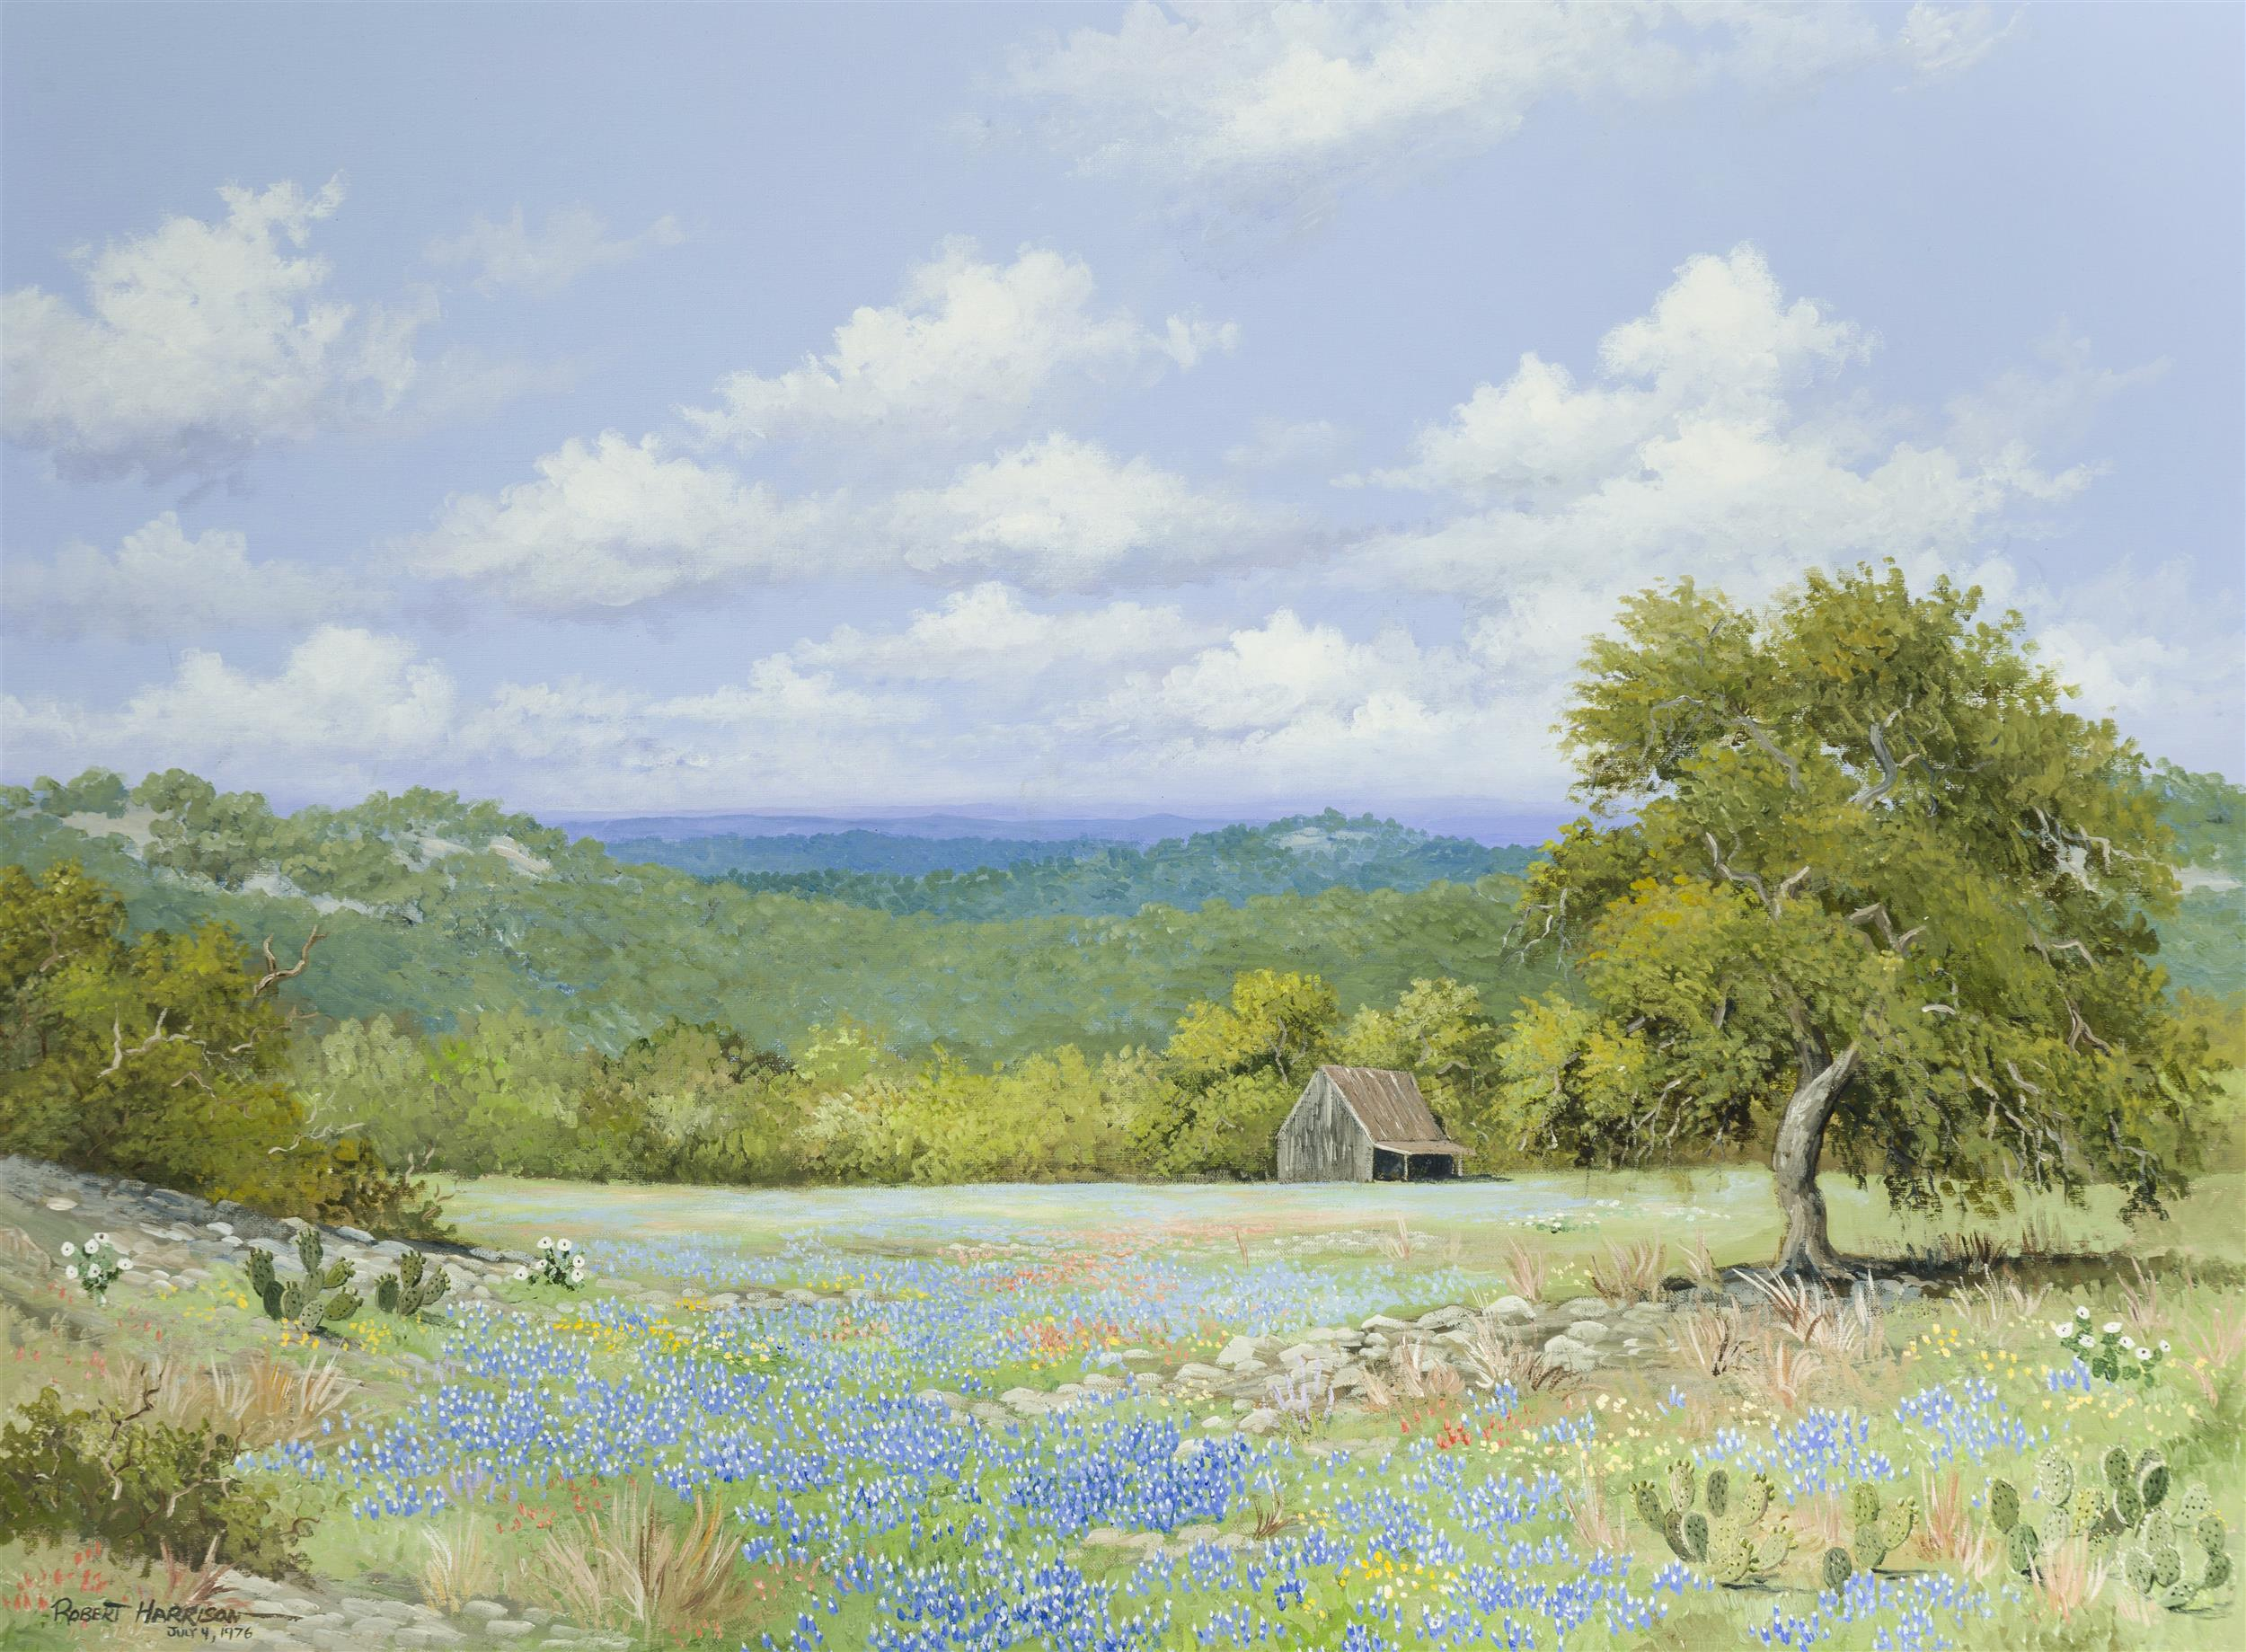 """Robert Harrison, (b. 1948 San Antonio, TX), Texas hill country landscape with bluebonnets and cactus, 1976, Oil on canvas, 30"""" H x 40"""""""